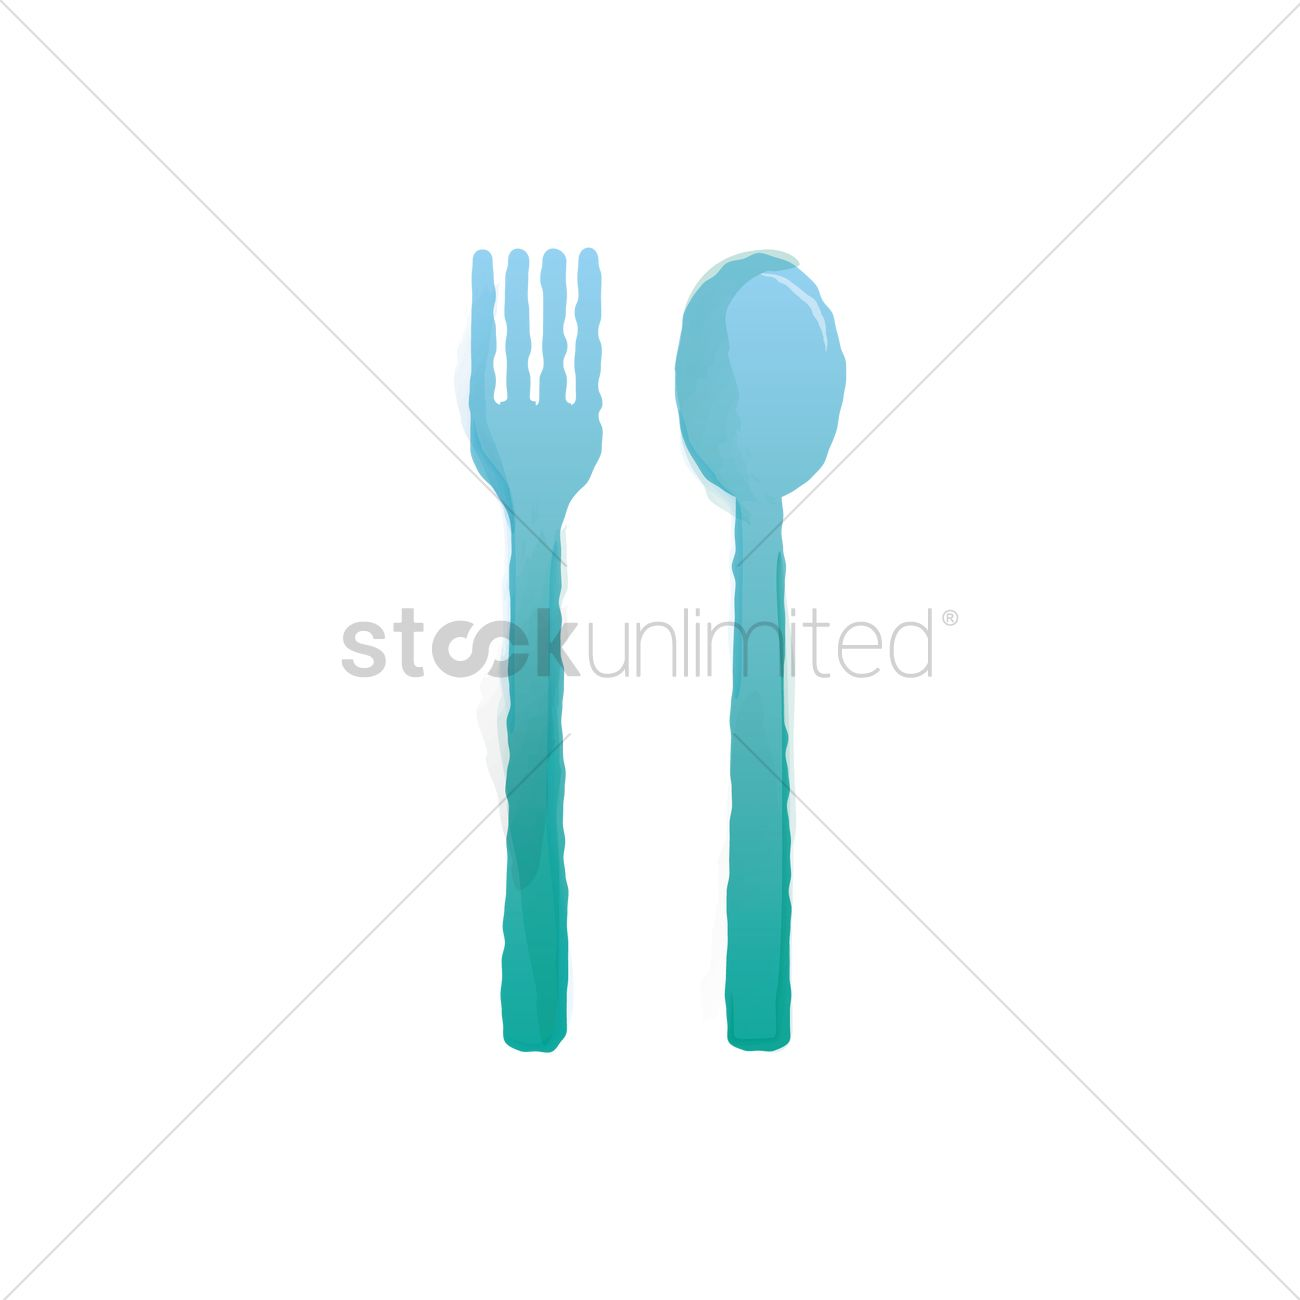 Plastic cutlery Vector Image - 1895512 | StockUnlimited